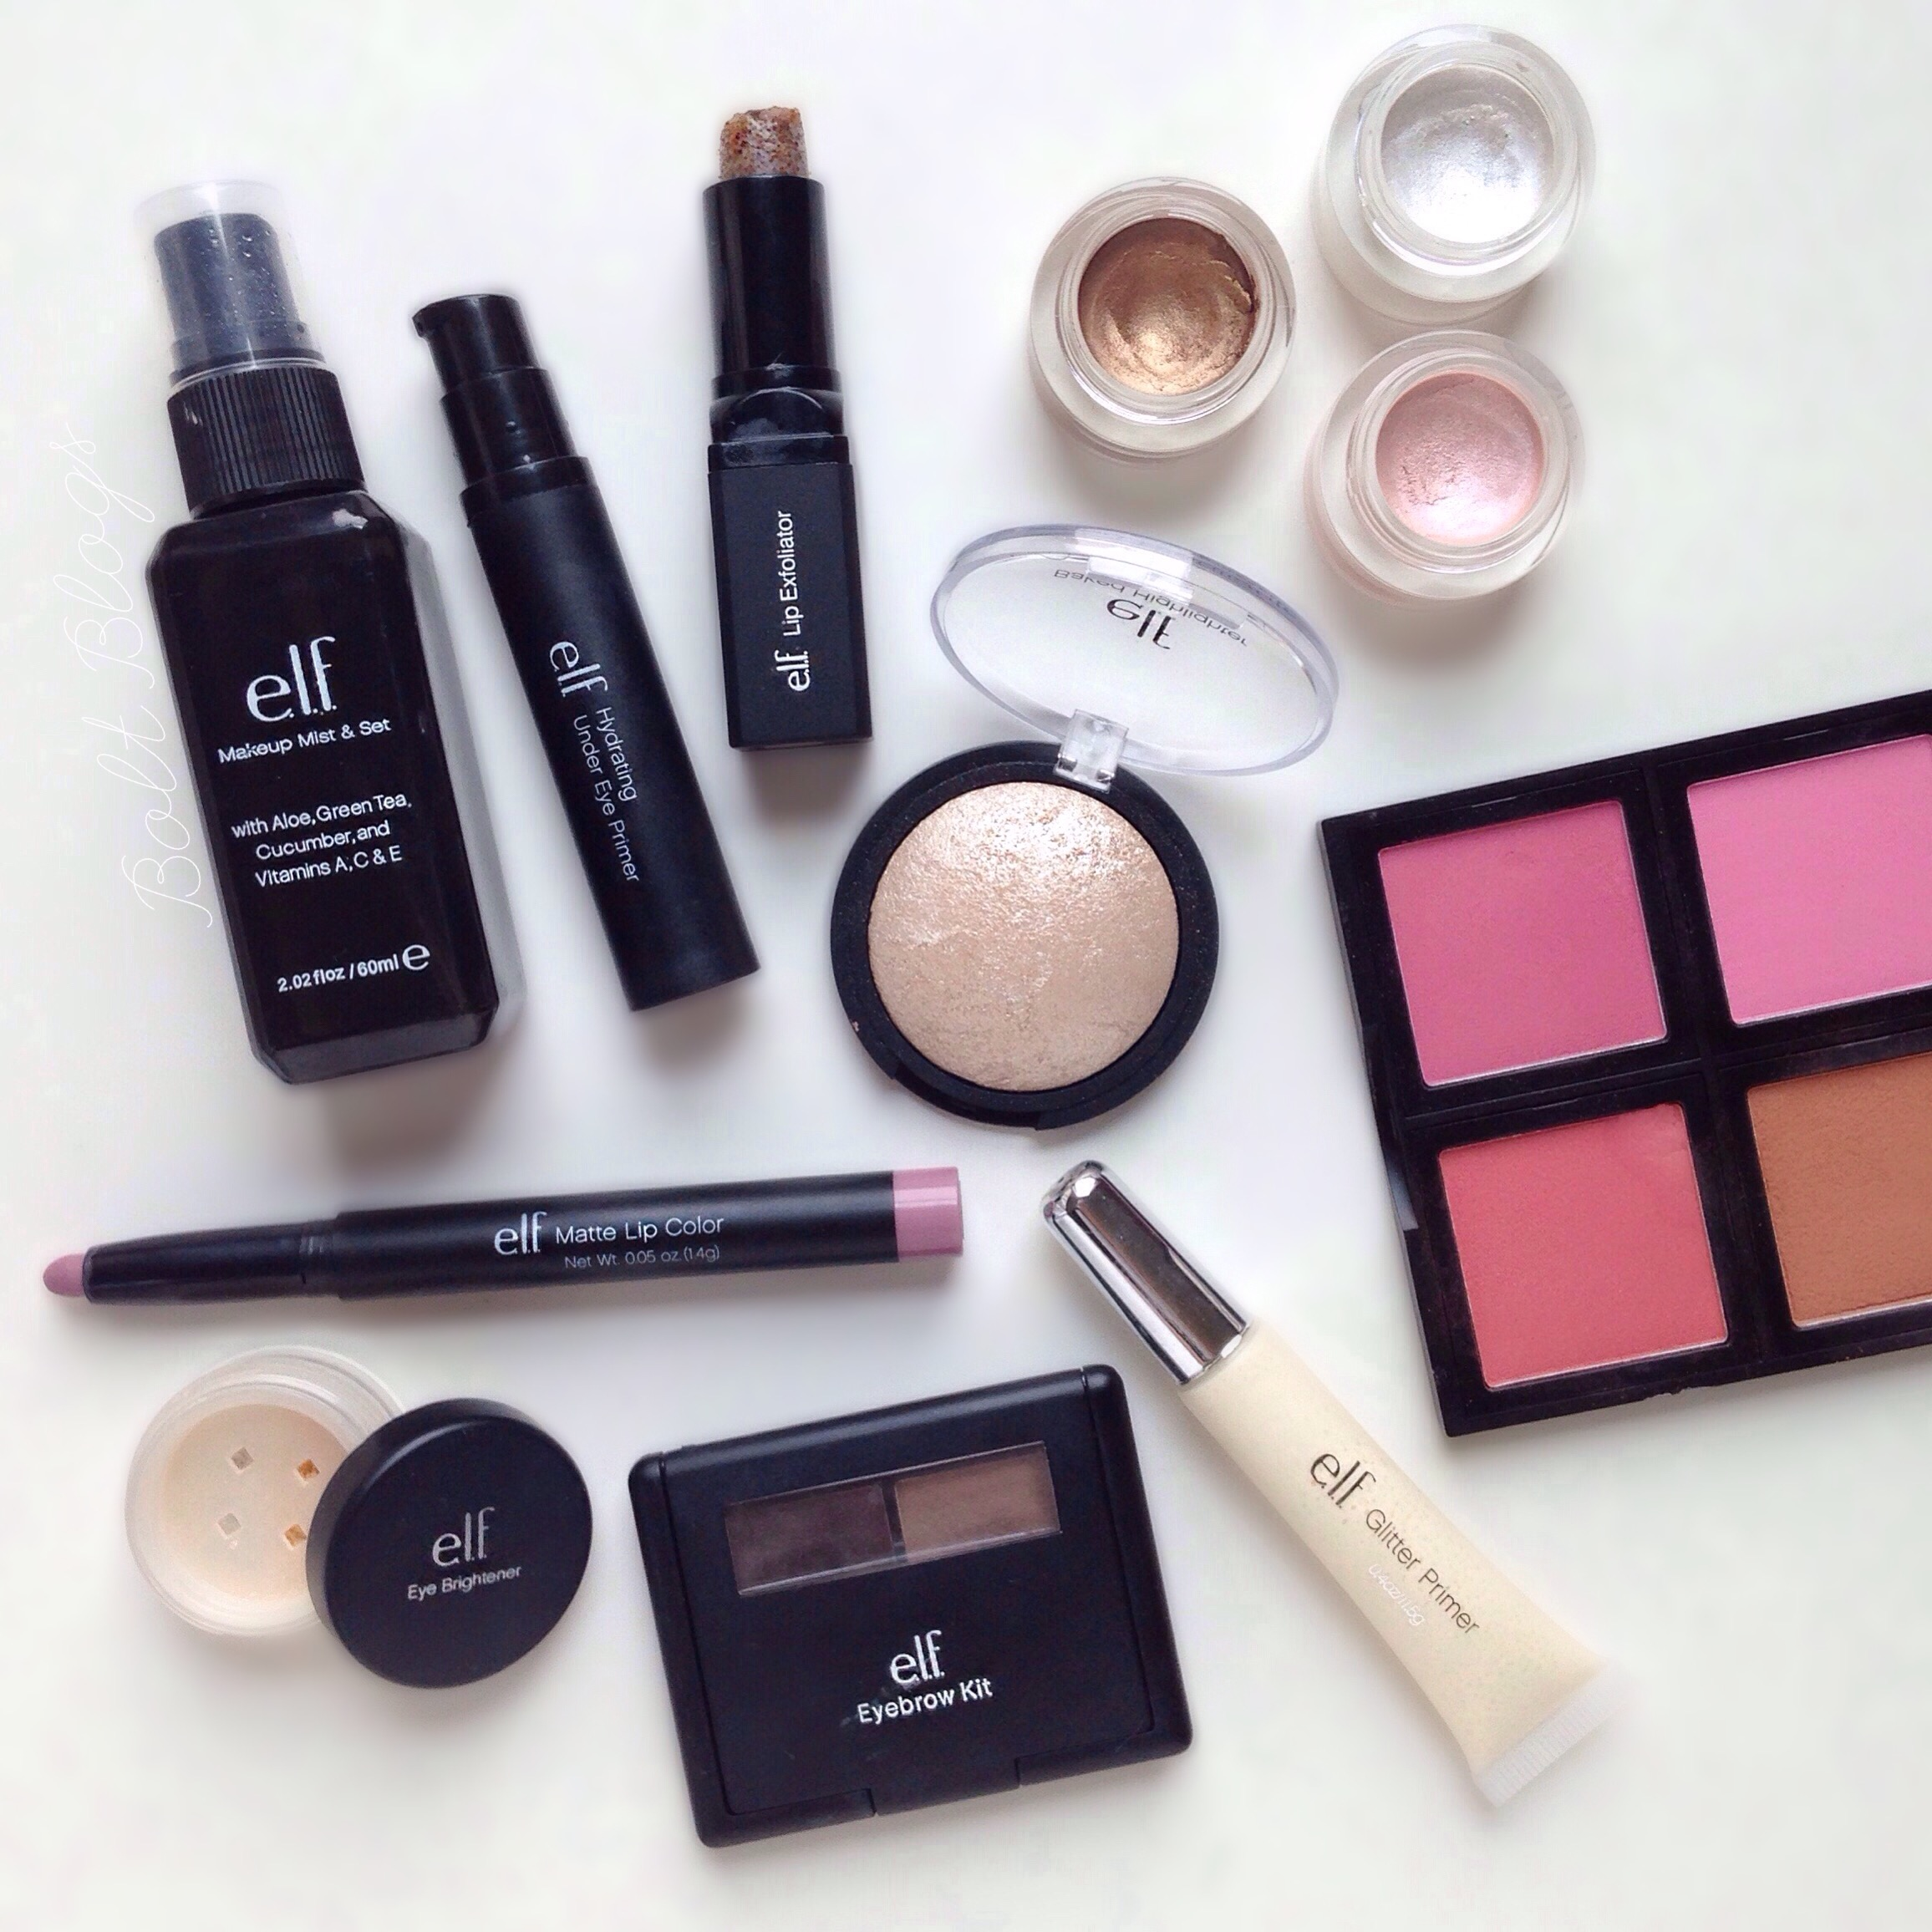 elf cosmetics products | bolt blogs